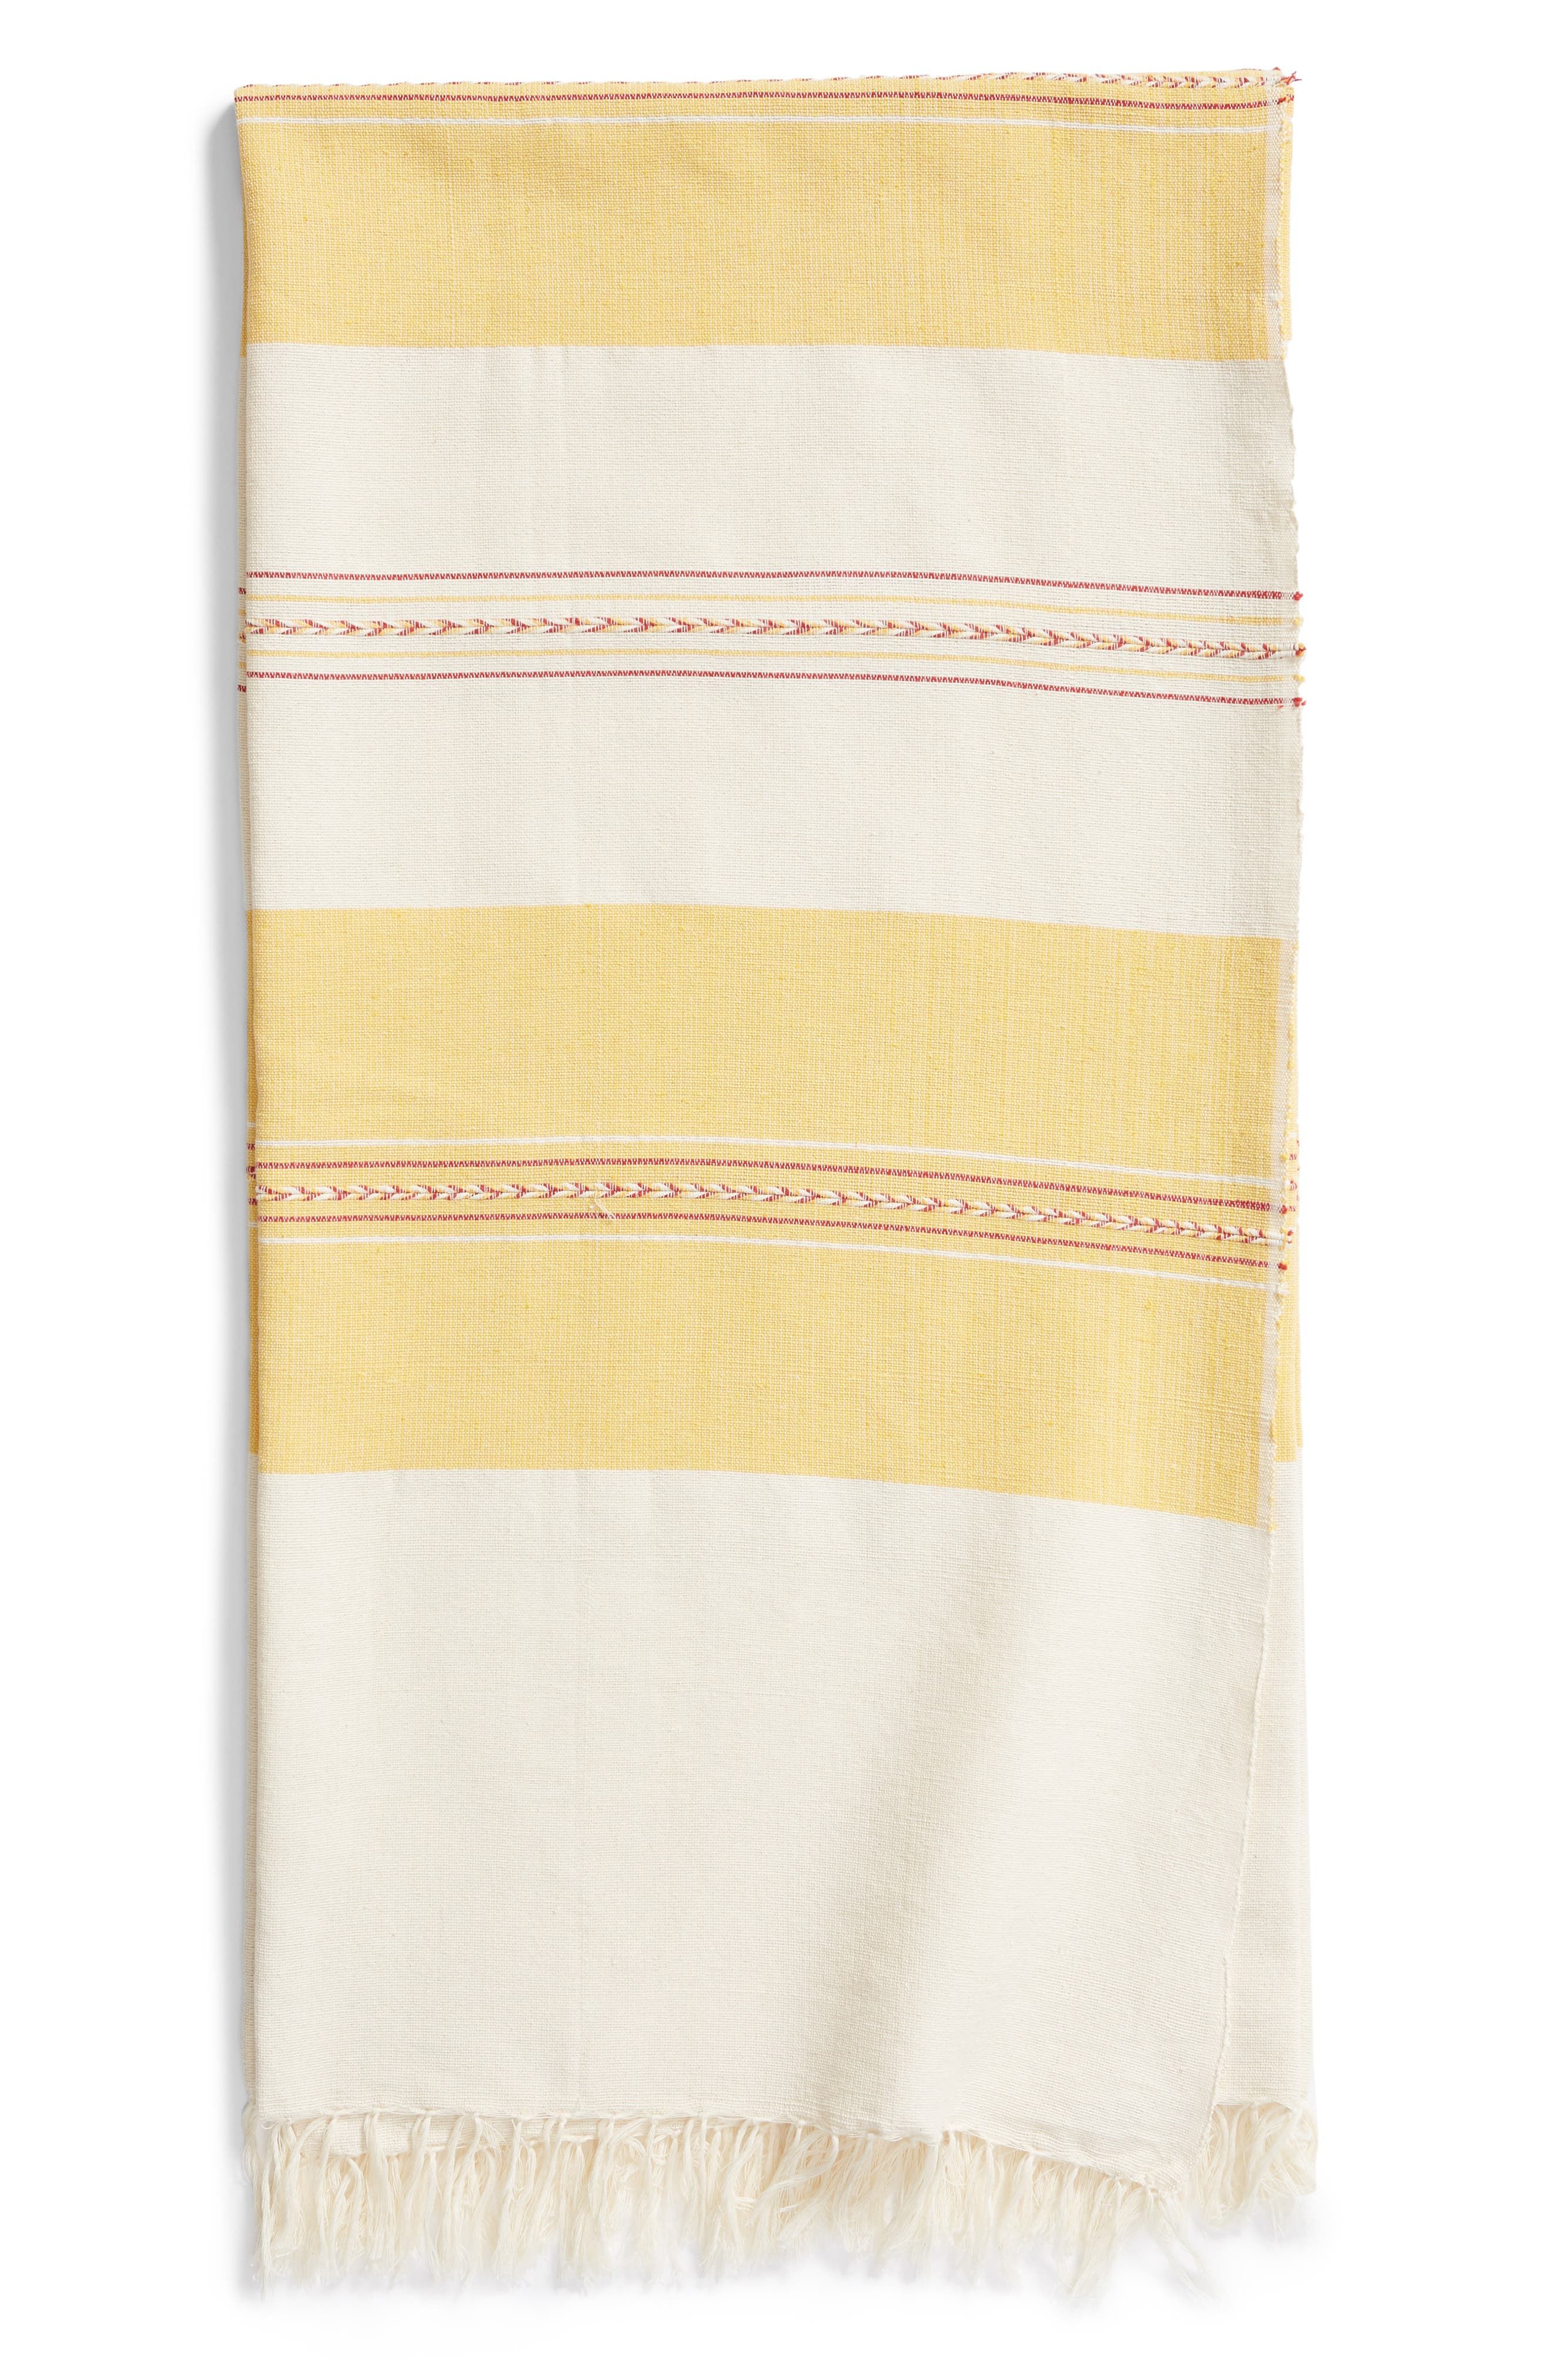 Golden Dunes Woven Cotton Blanket,                             Main thumbnail 1, color,                             250